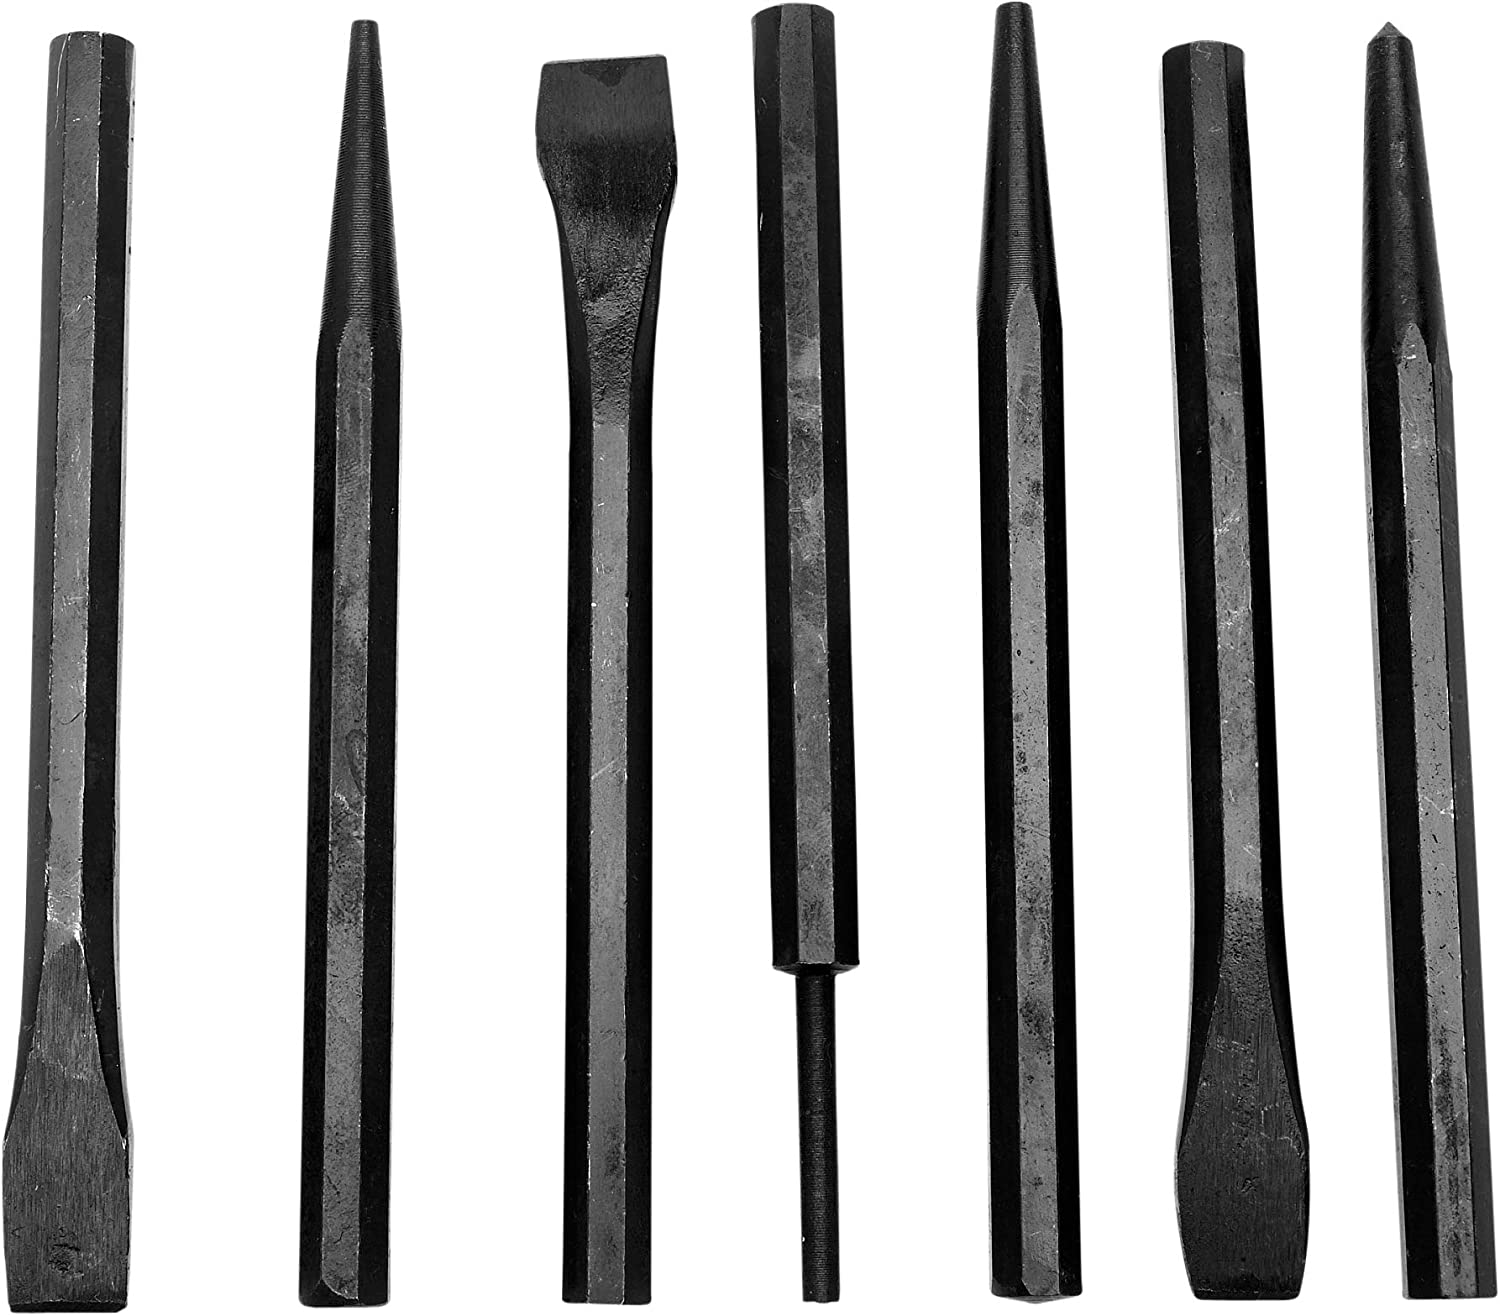 Performance Tool 1937 7-Piece Chisel 2021new shipping free shipping Punch Set Special Campaign and